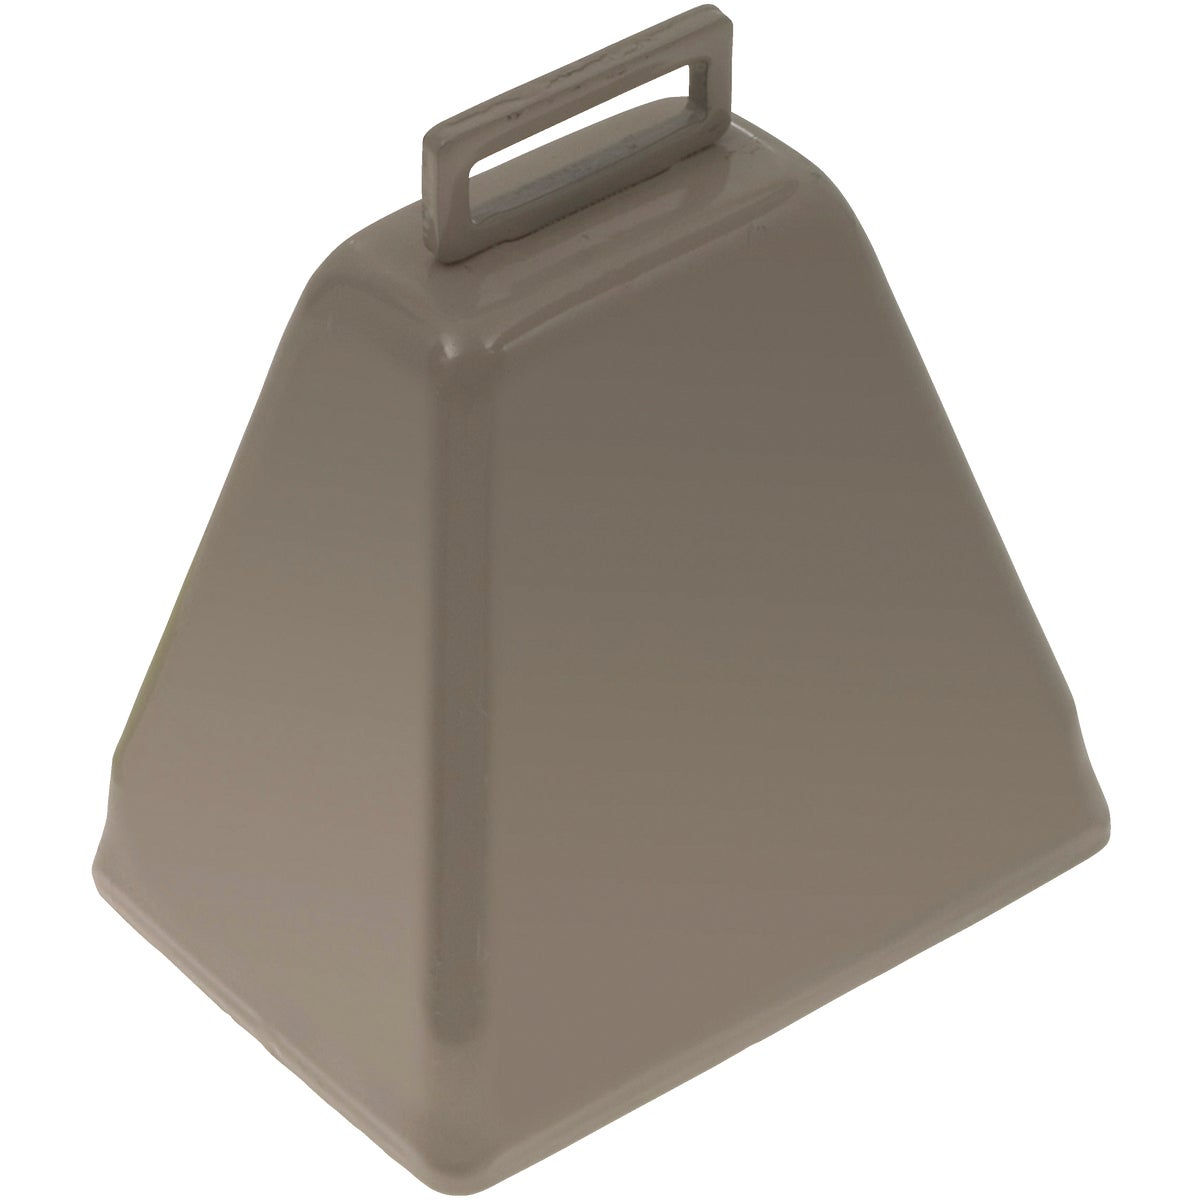 LD12 COWBELL - S90071200-CB900712 by Speeco Farmex